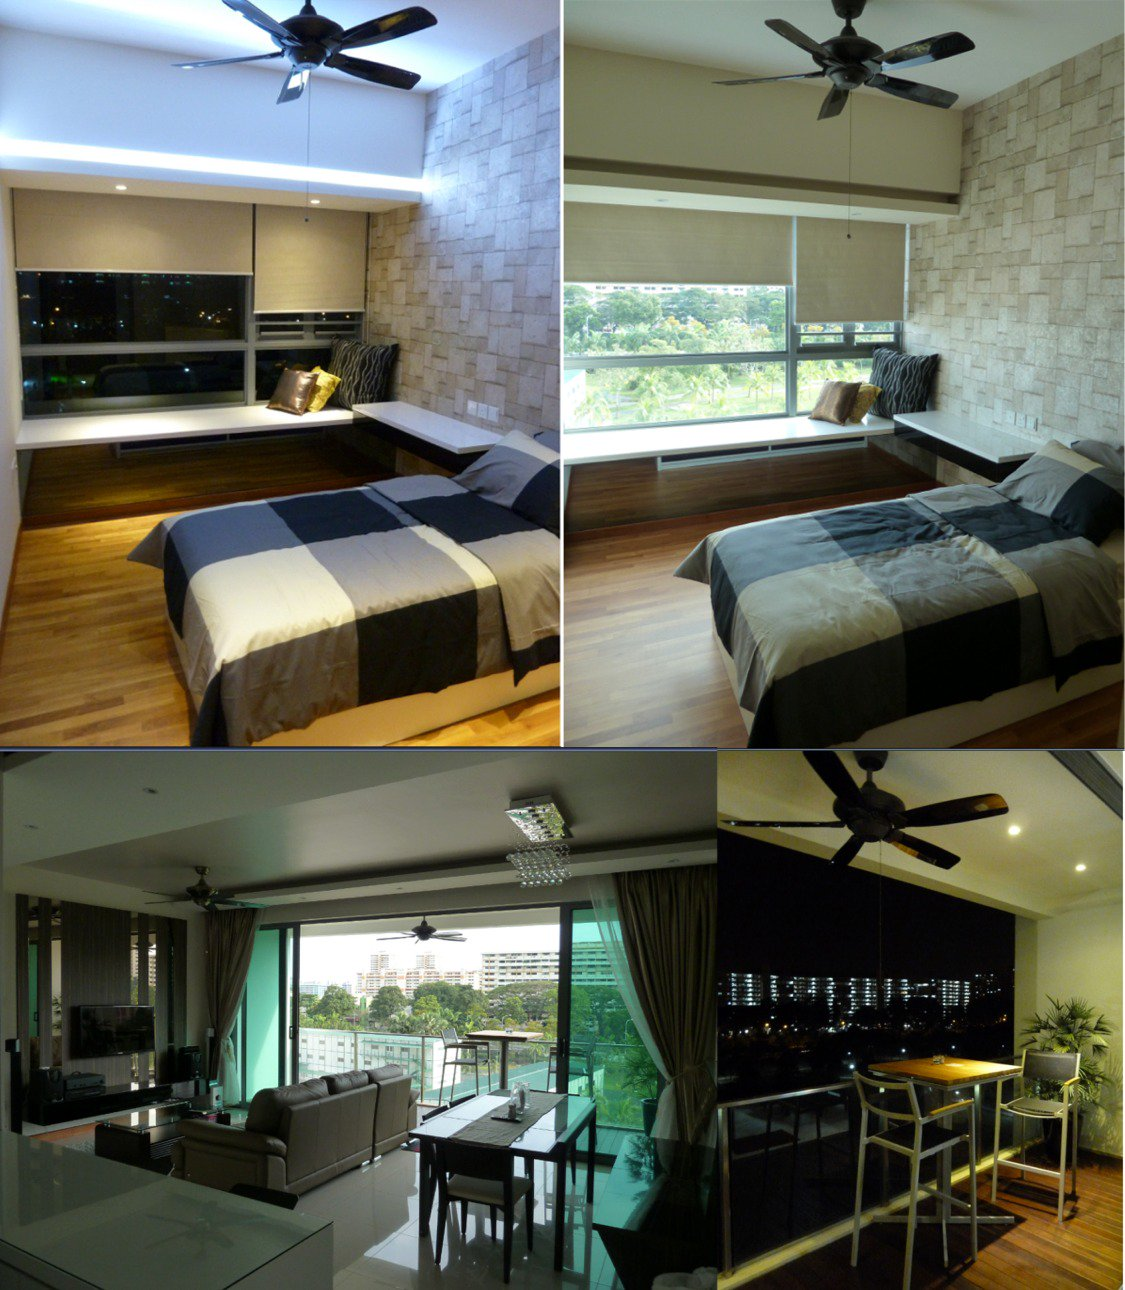 ROOM TO LET: New condo room for rent - HP: 94572446